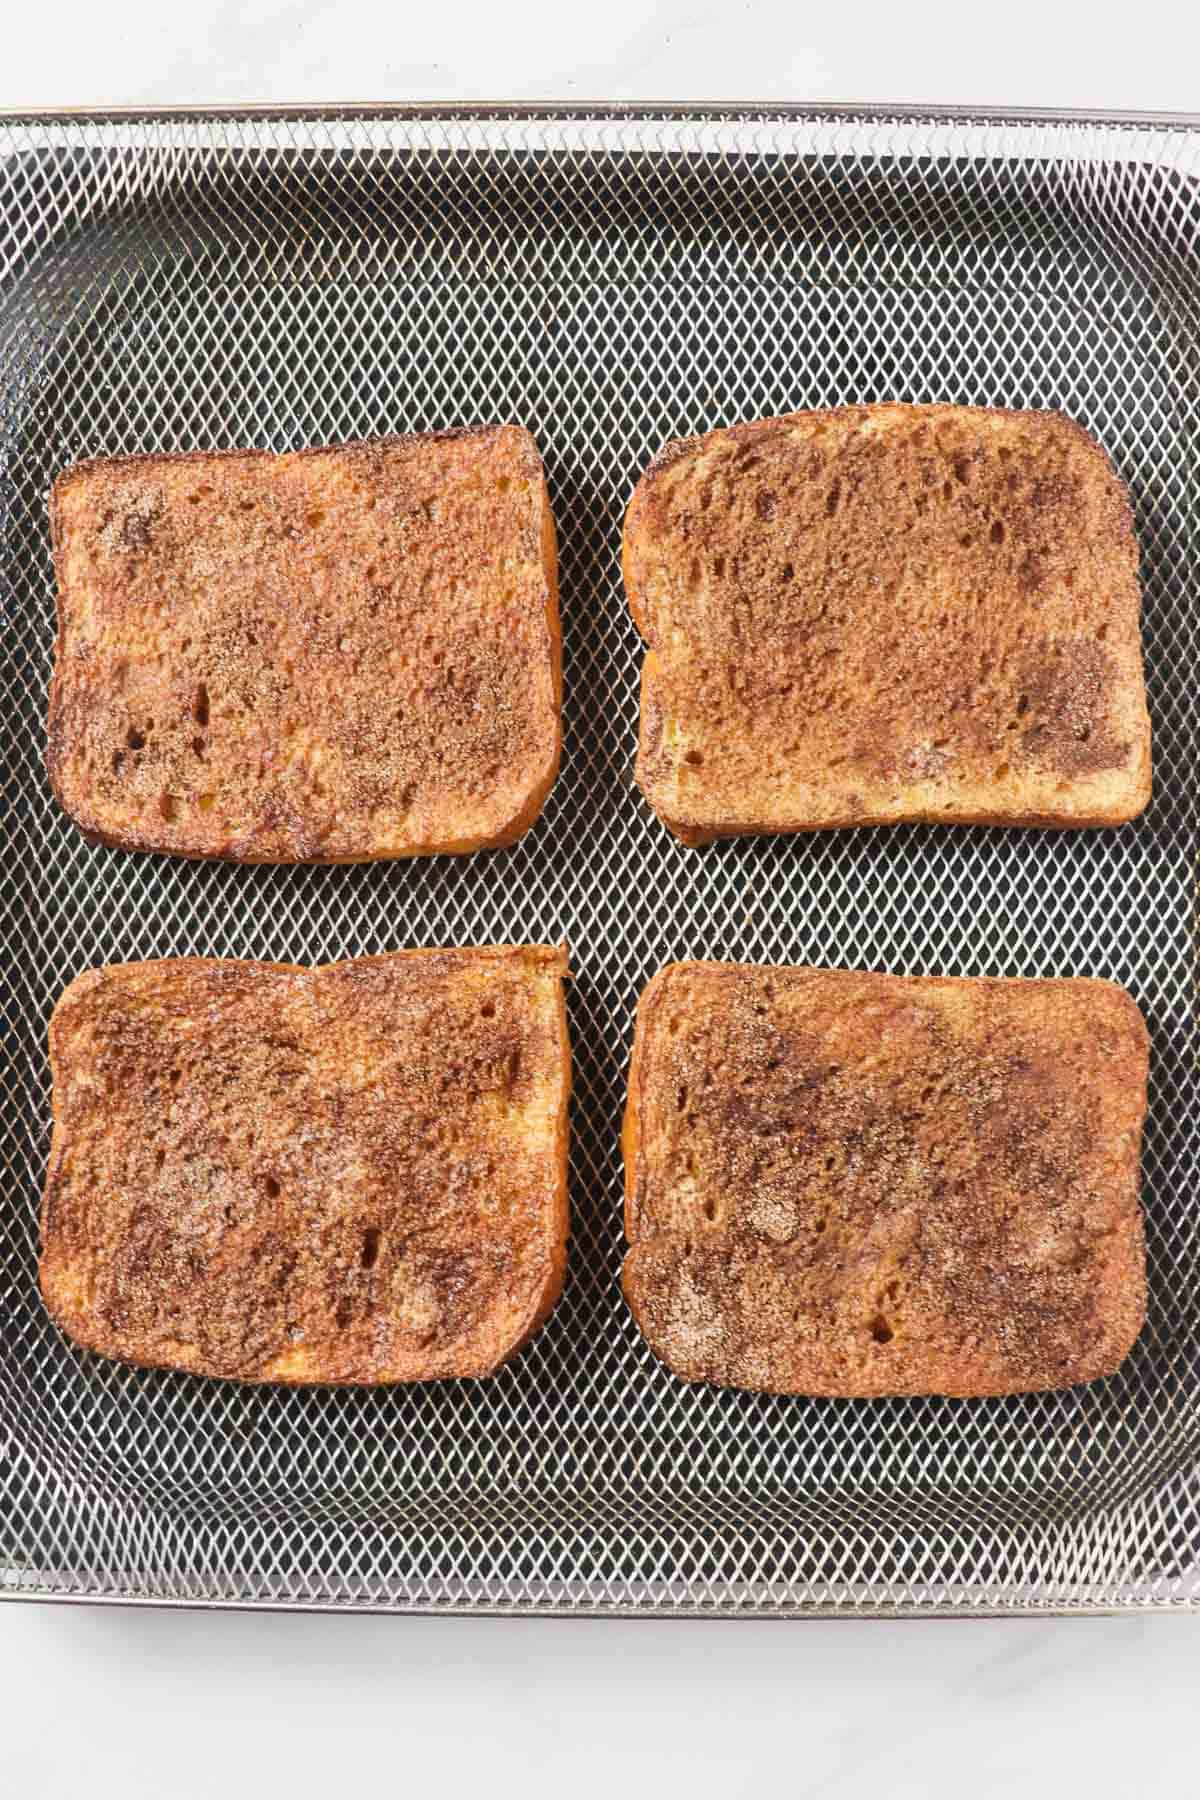 cooked french toast in air fryer basket